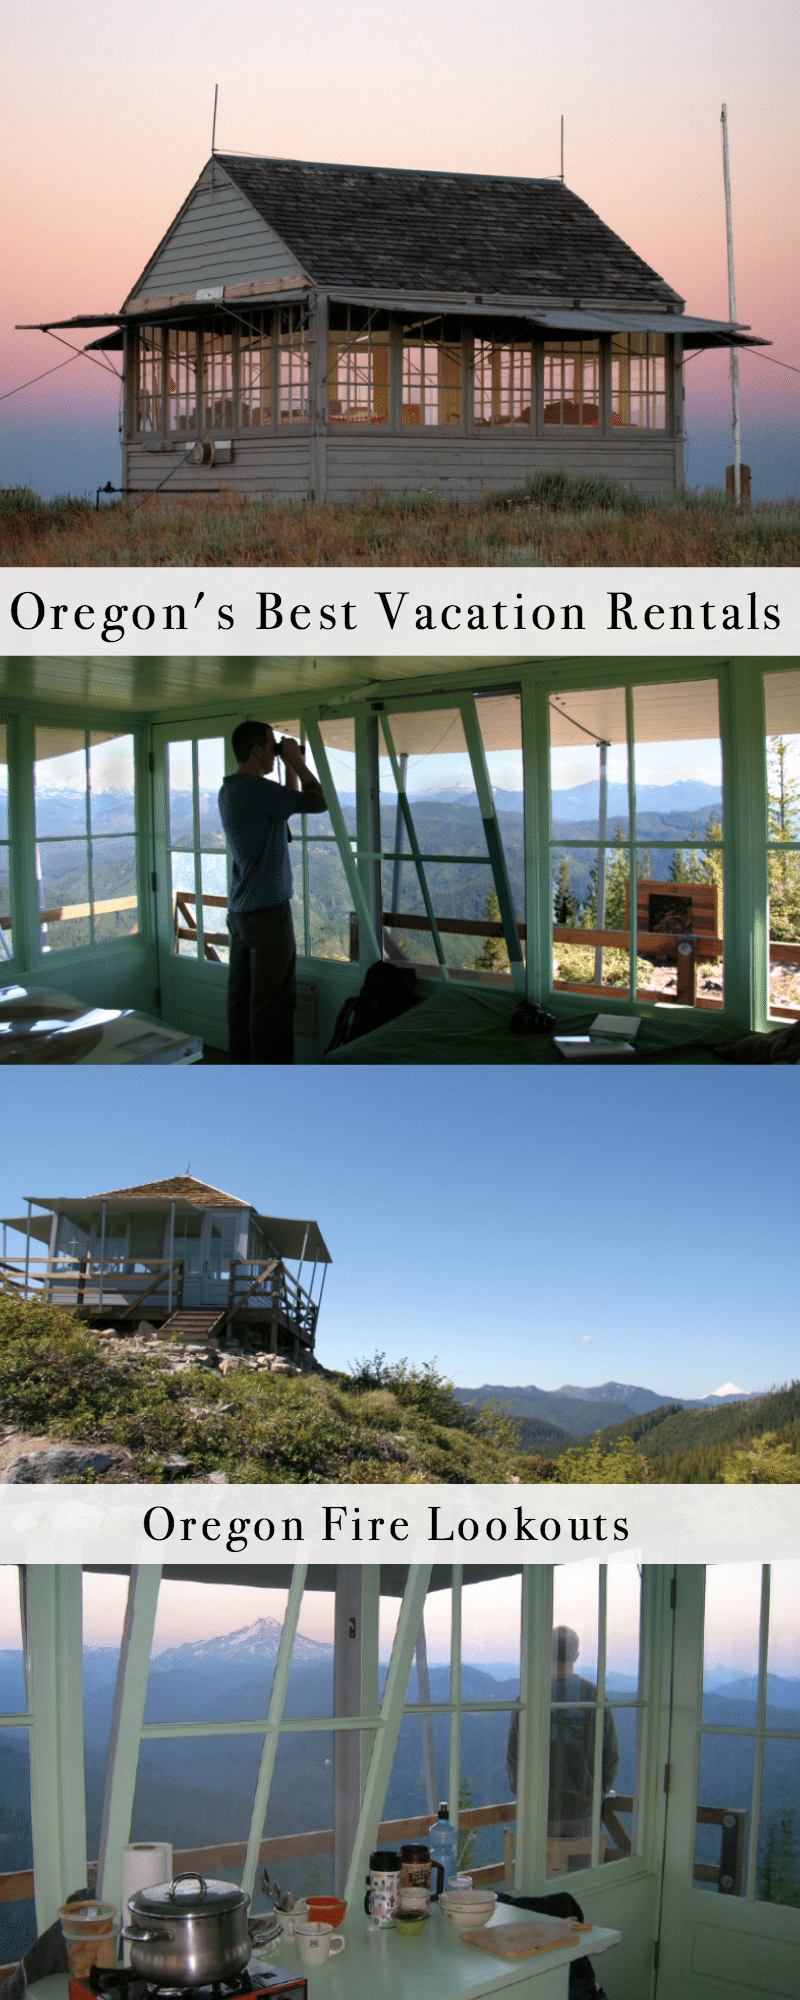 Oregon's Best Vacation Rentals: Oregon Fire Lookouts